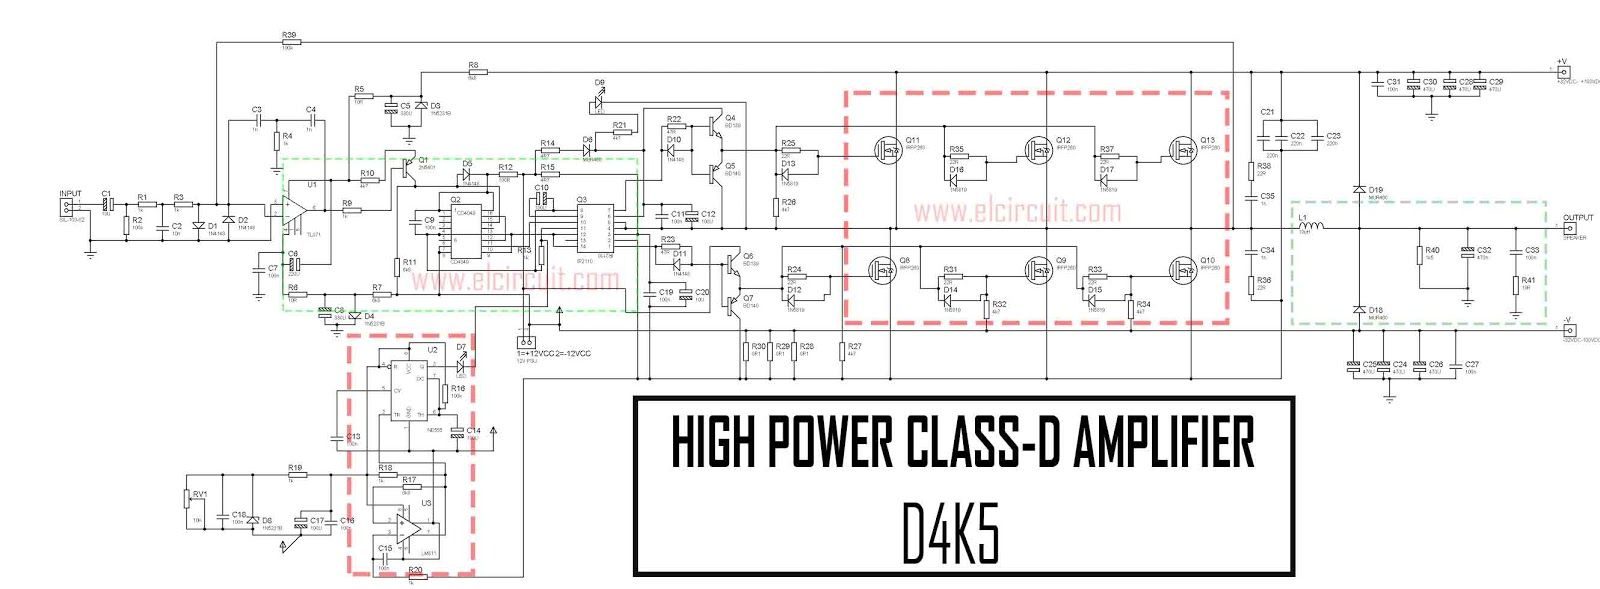 hight resolution of power amplifier circuit diagram class d d4k5